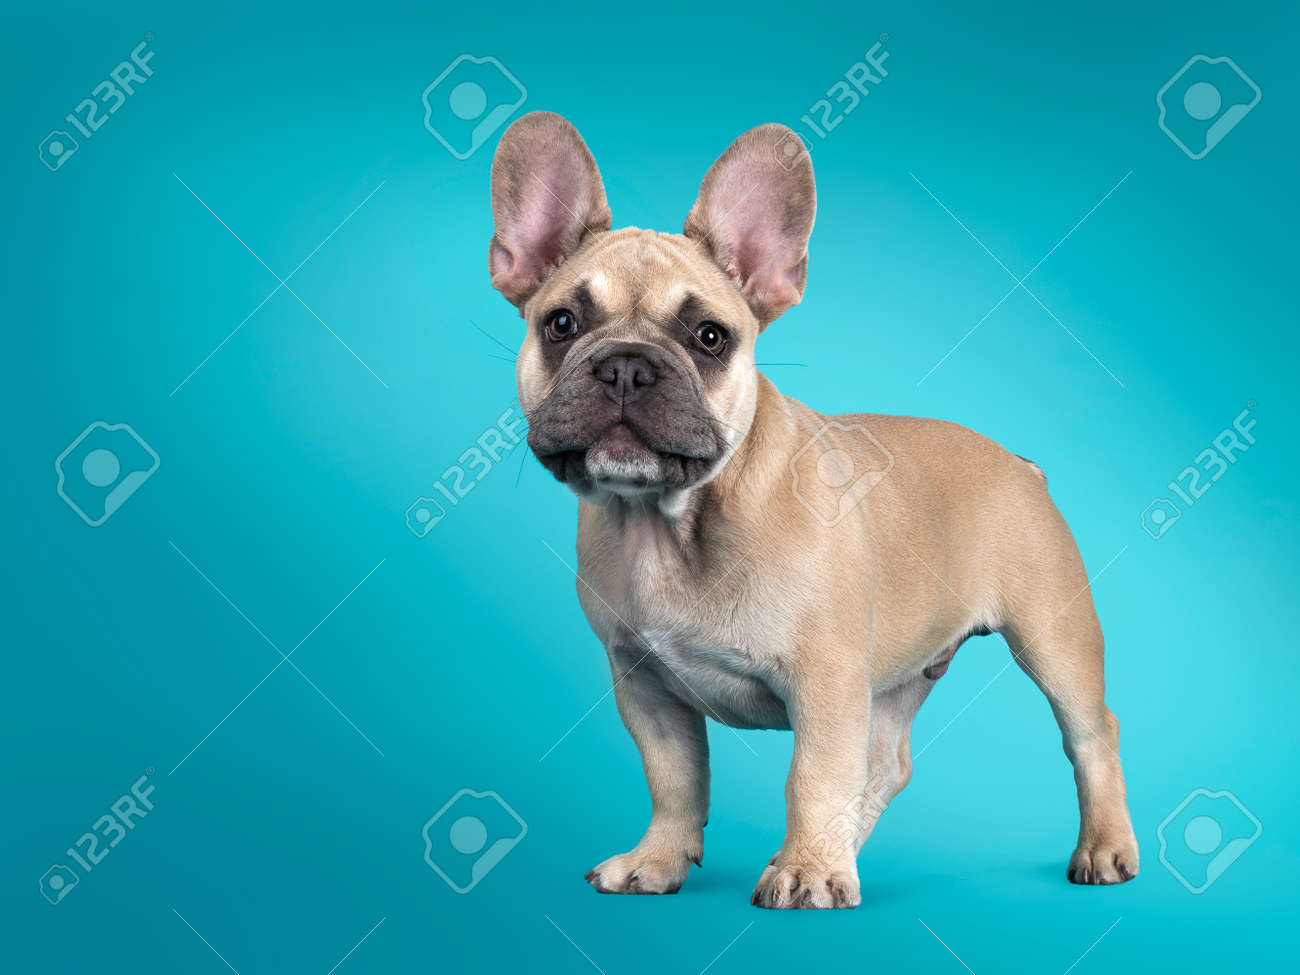 Adorable French Bulldog puppy, standing sideways. Looking towards camera. Isolated on turquoise background. - 173357246